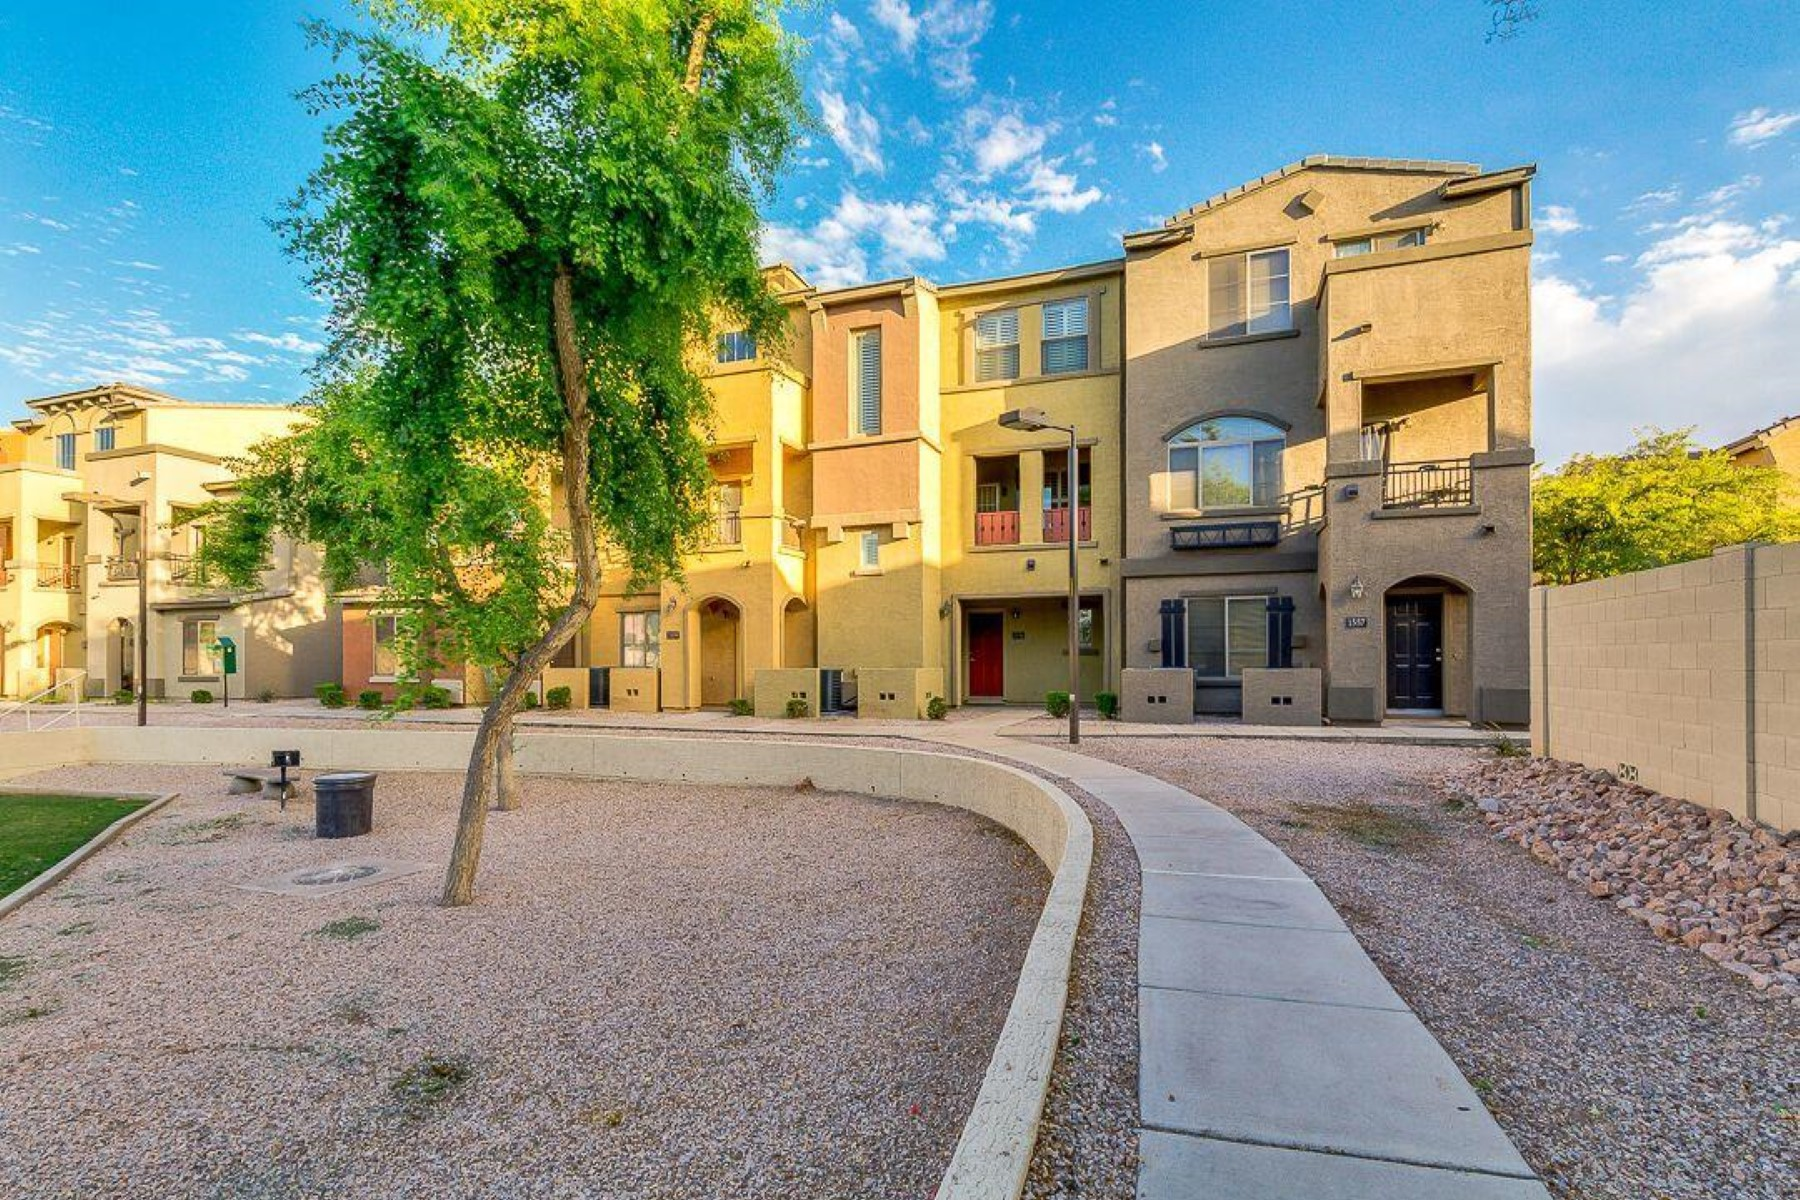 Townhouse for Rent at Highly sought after townhome in the coveted gated Villagio community 2402 E 5th St #1558 Tempe, Arizona 85281 United States